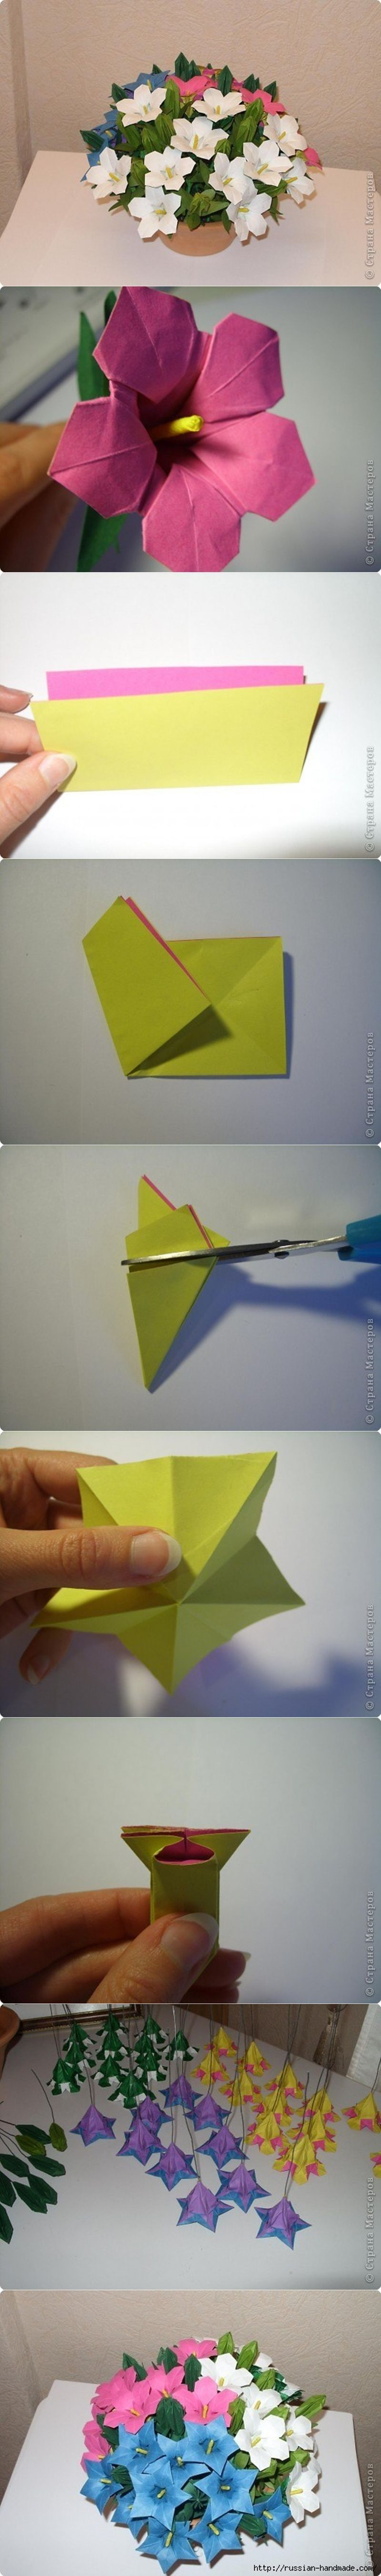 How to make paper flowers using origami the art of paper folding fun how to make paper flowers using origami the art of paper folding fun paper diy on pumpernickel pixie izmirmasajfo